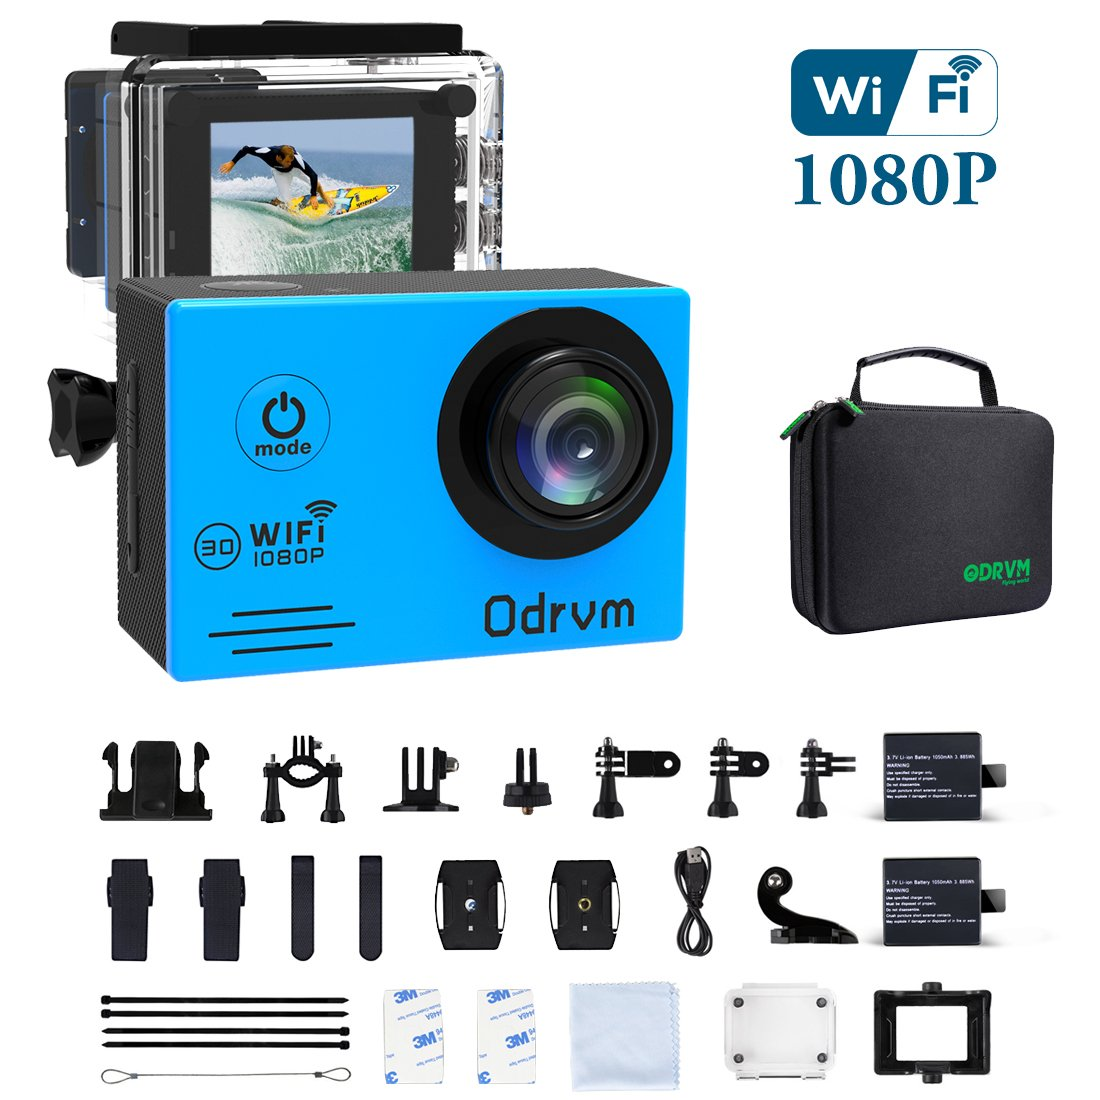 c8004886a72 Amazon.com   WiFi Action Camera Waterproof Cameras - HD 1080P Underwater  Camera Diving 98FT Camcorder with 19PCS Accessories for Kids